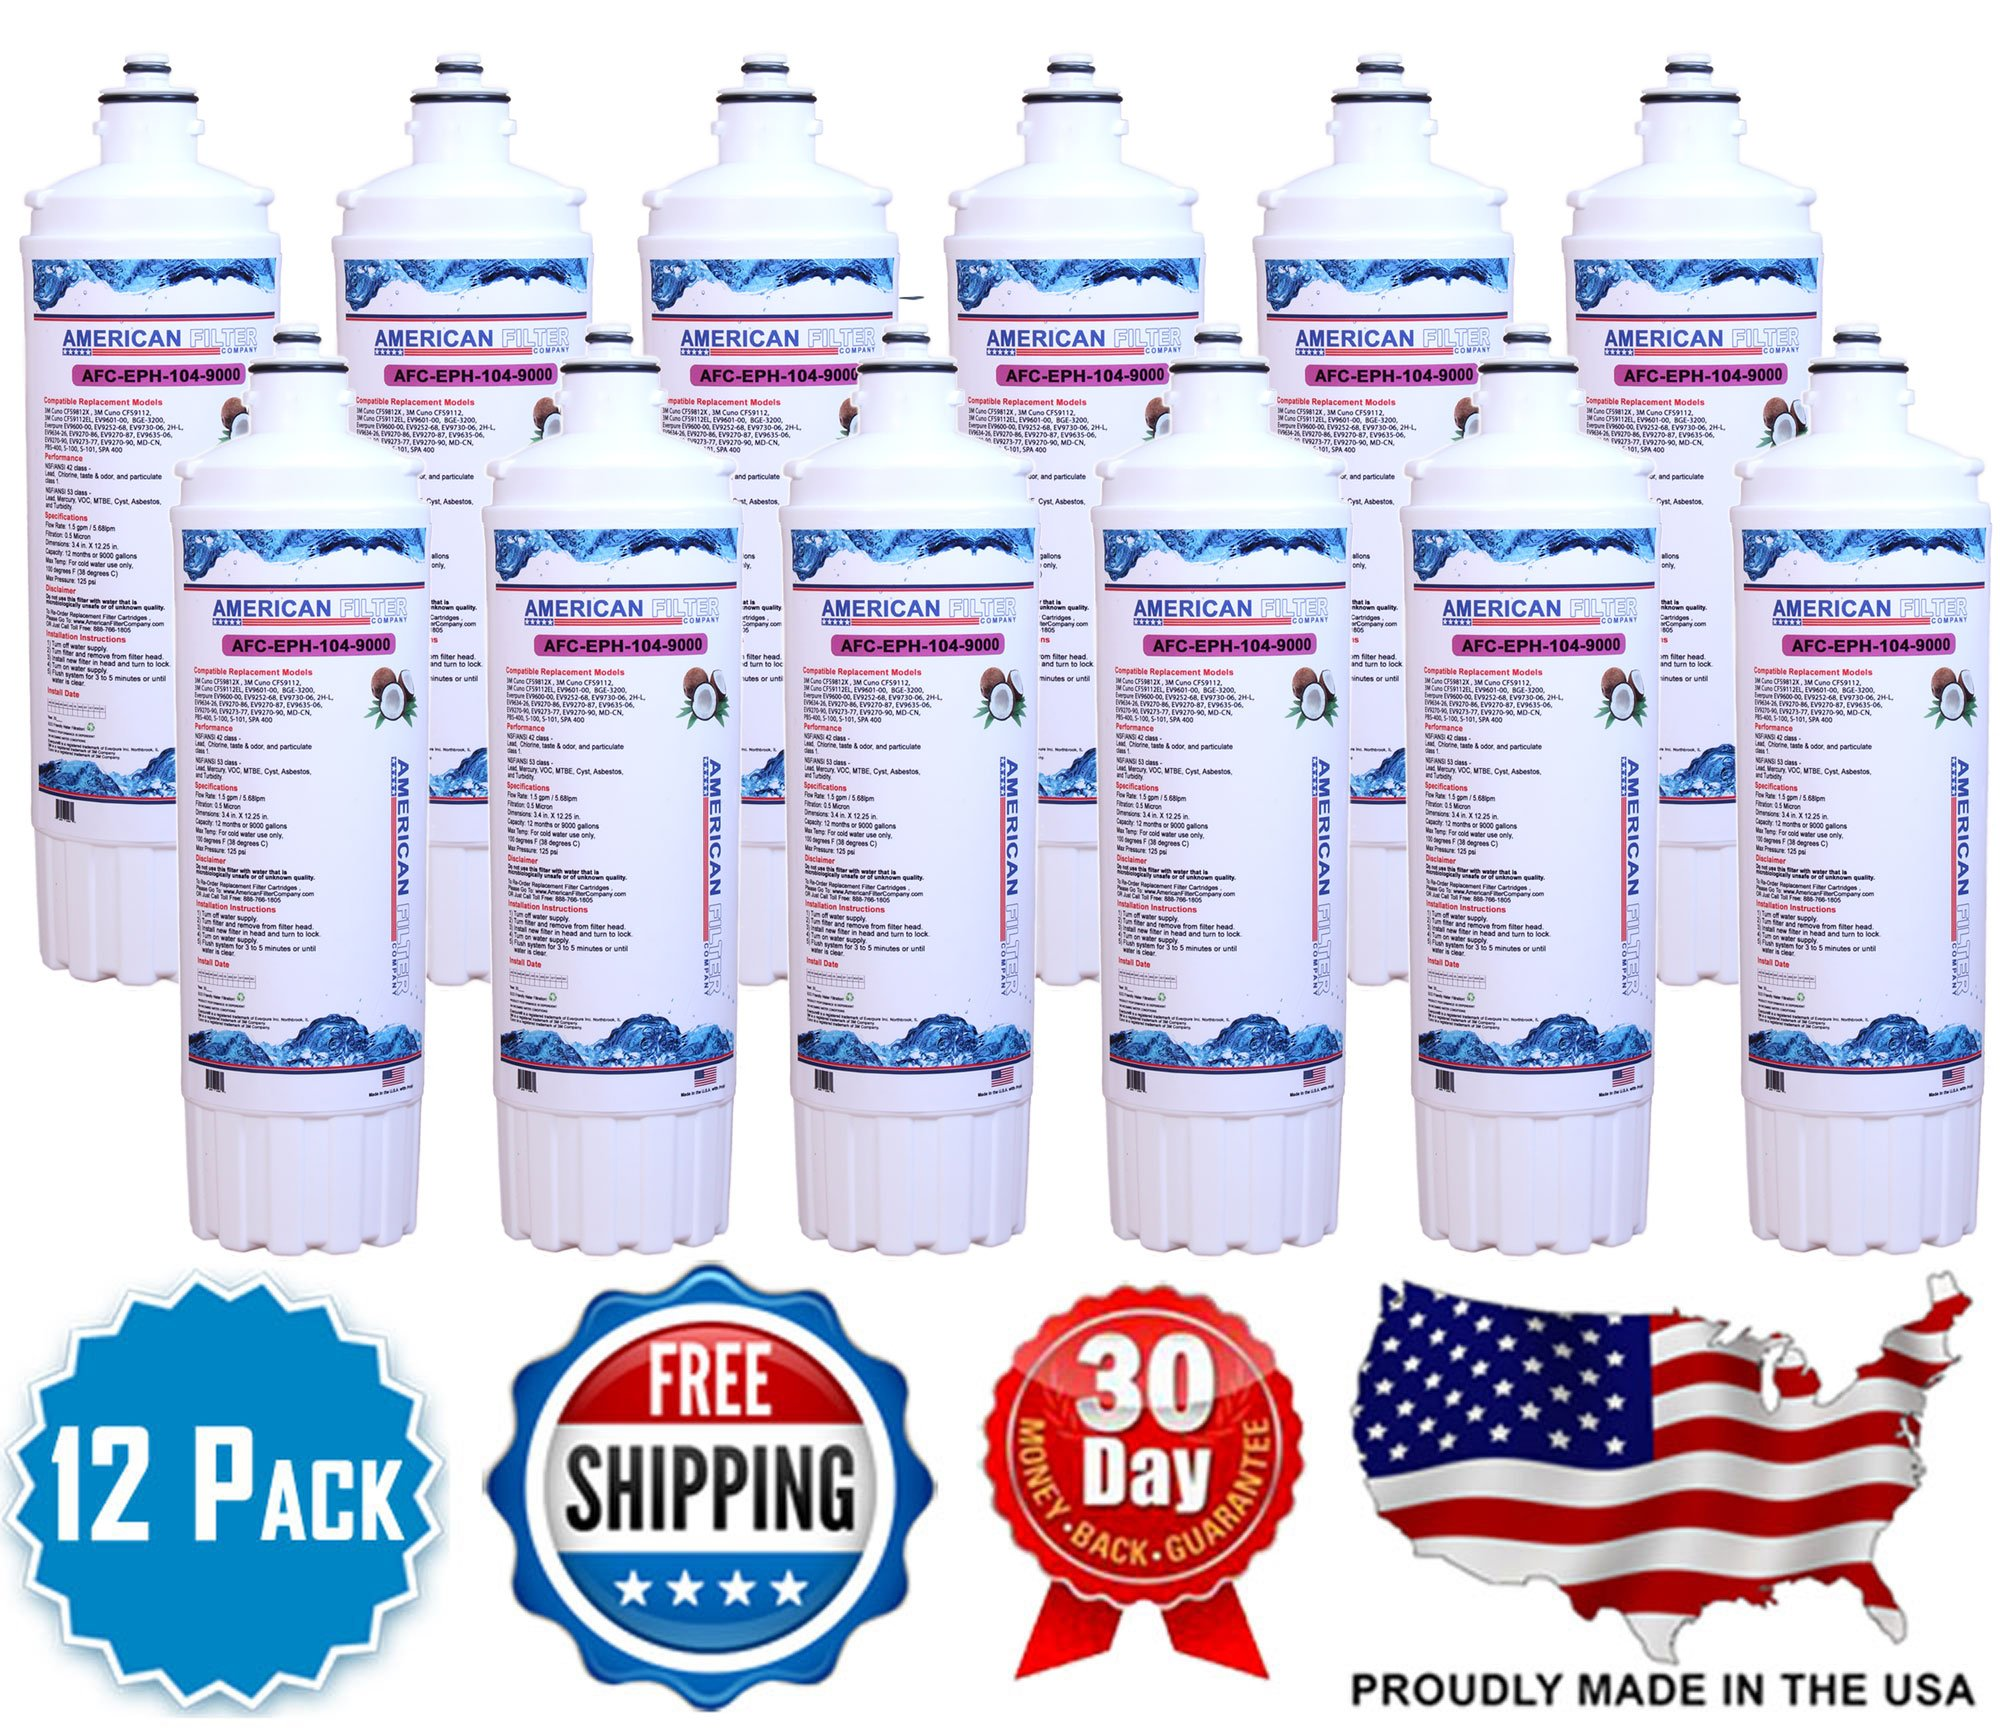 12 Pack AFC (TM) Brand Water Filters (Compatible with Everpure(R) SPA 400 Filters)